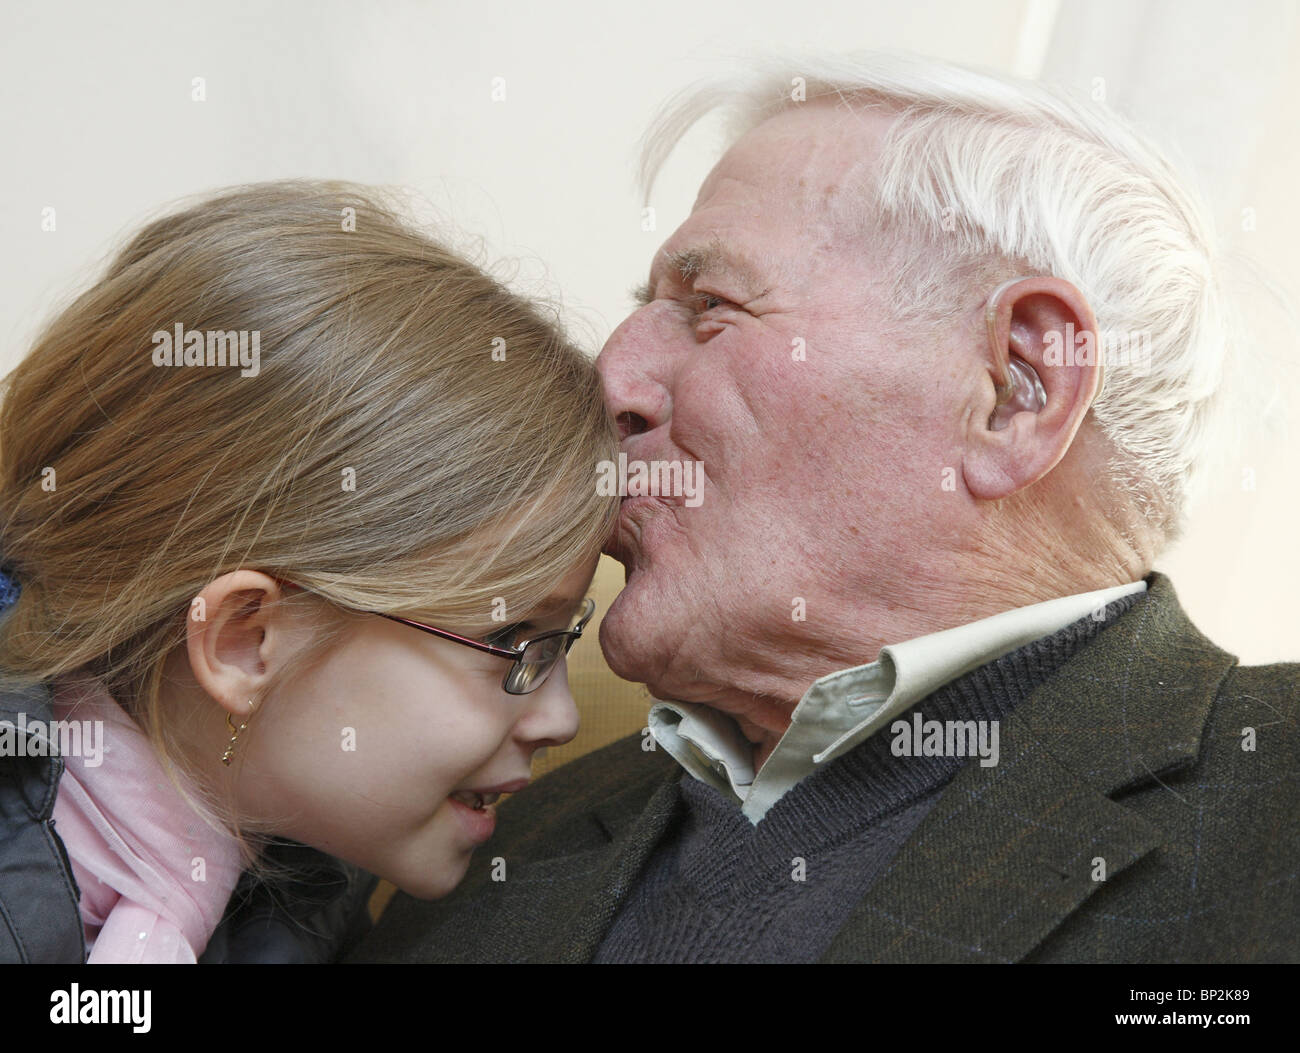 Grandfather kissing his granddaughter on the forehead - Stock Image